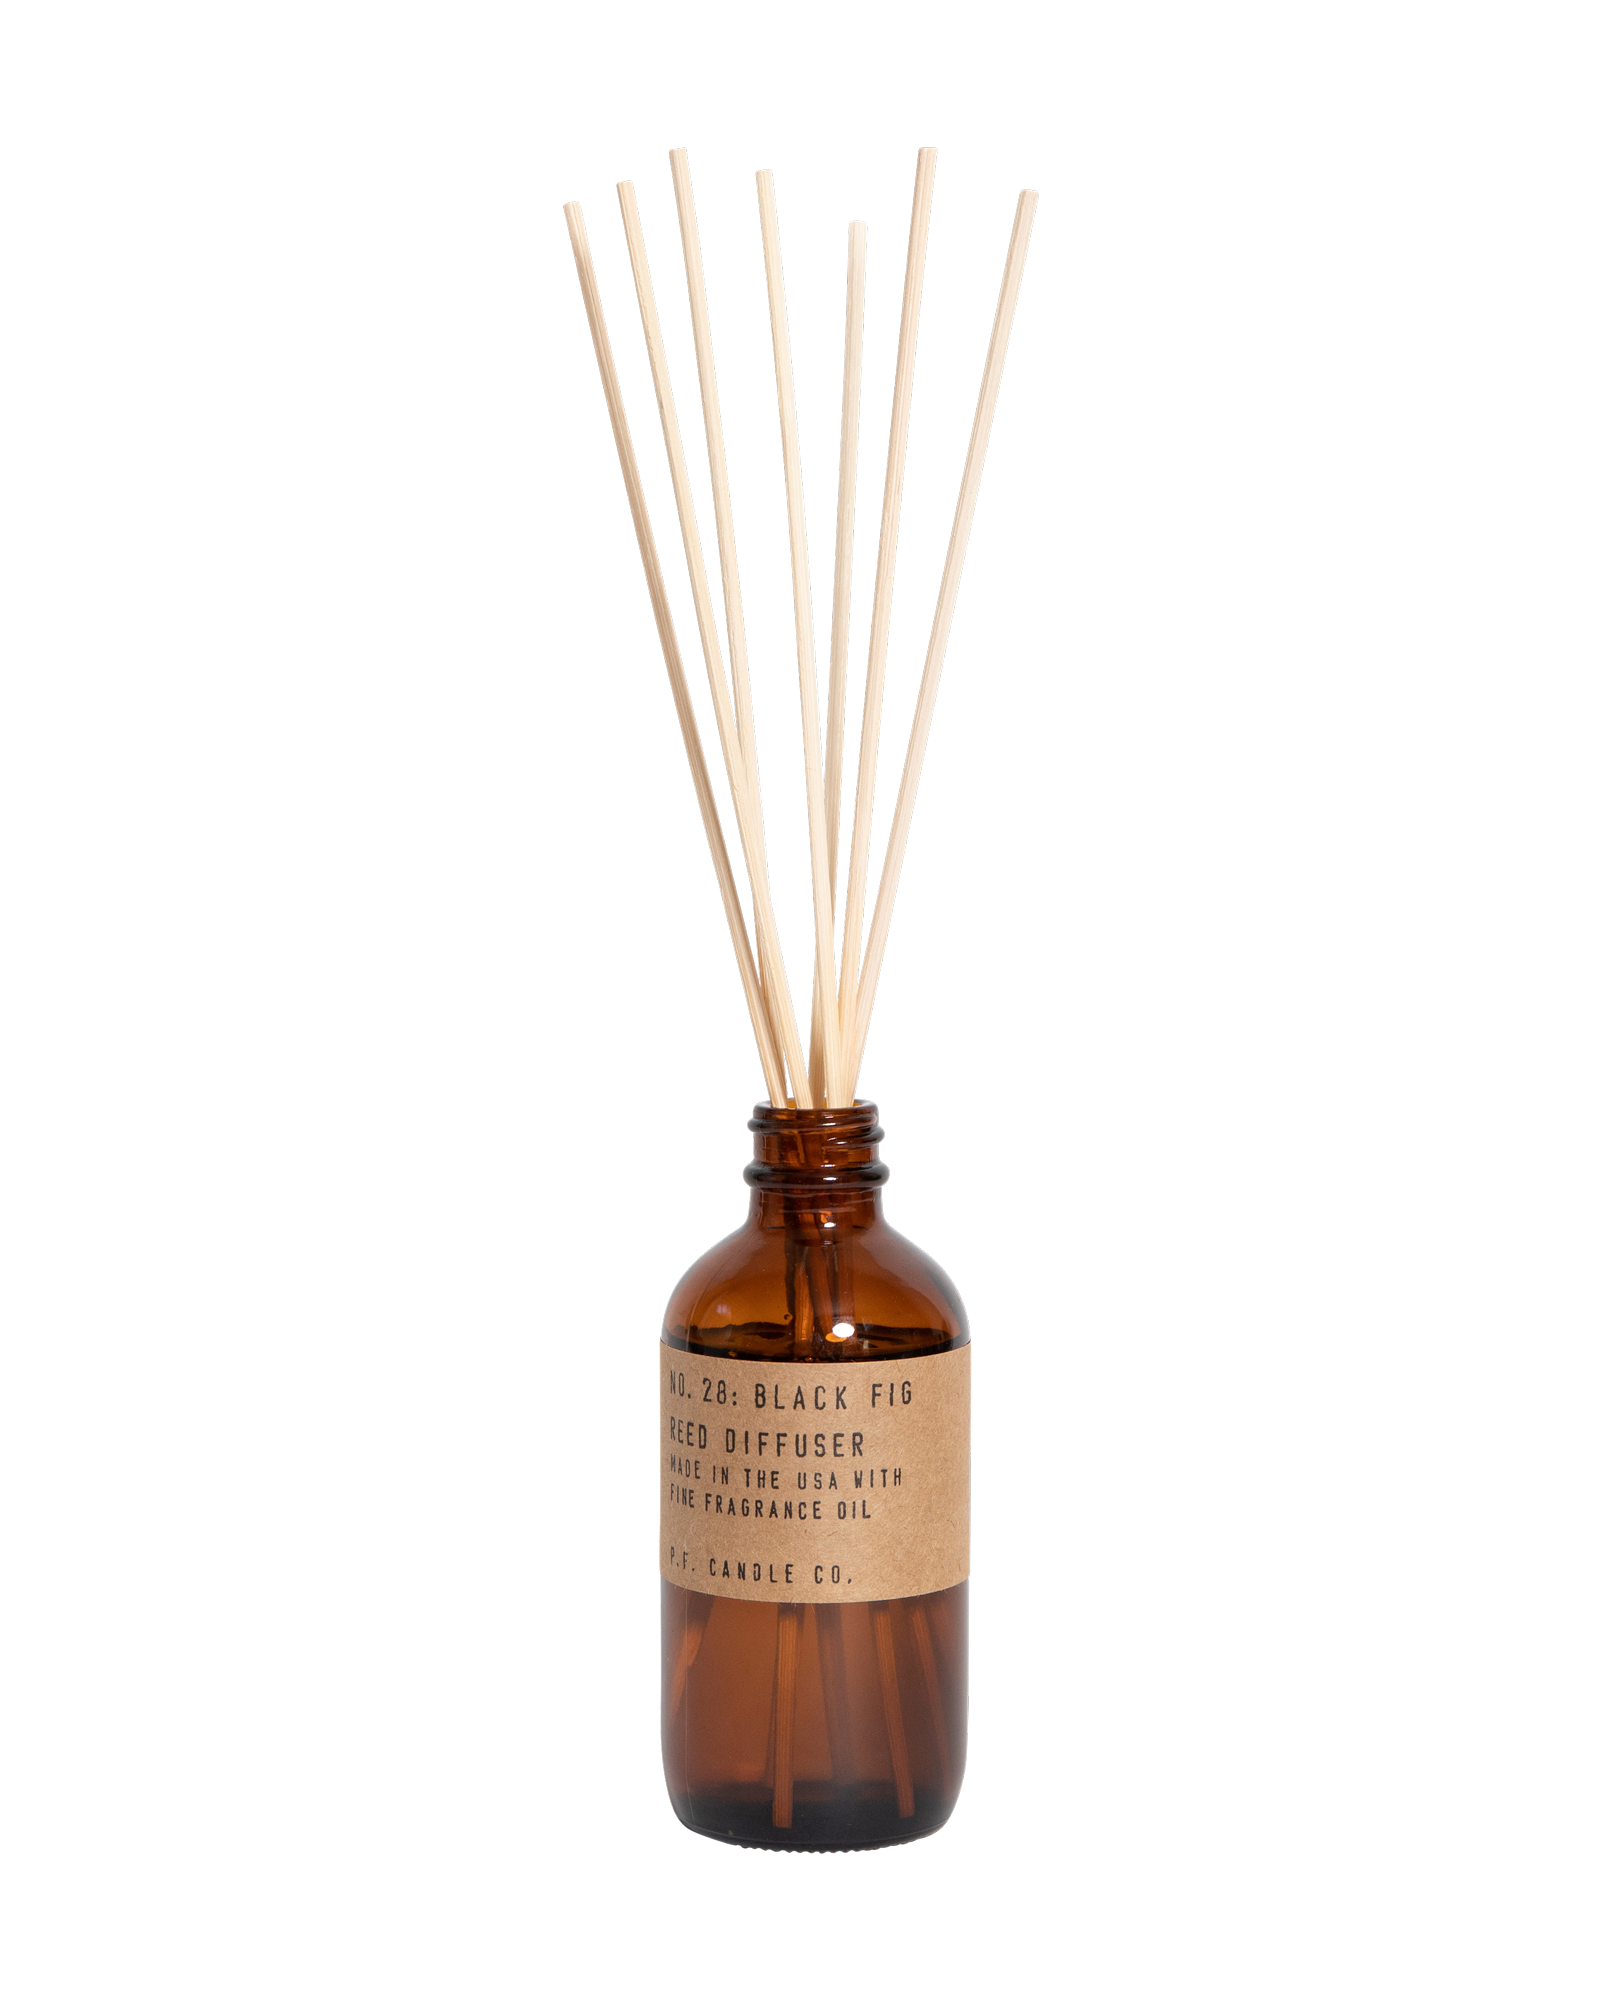 PF Candle Co Black Fig Reed Diffuser